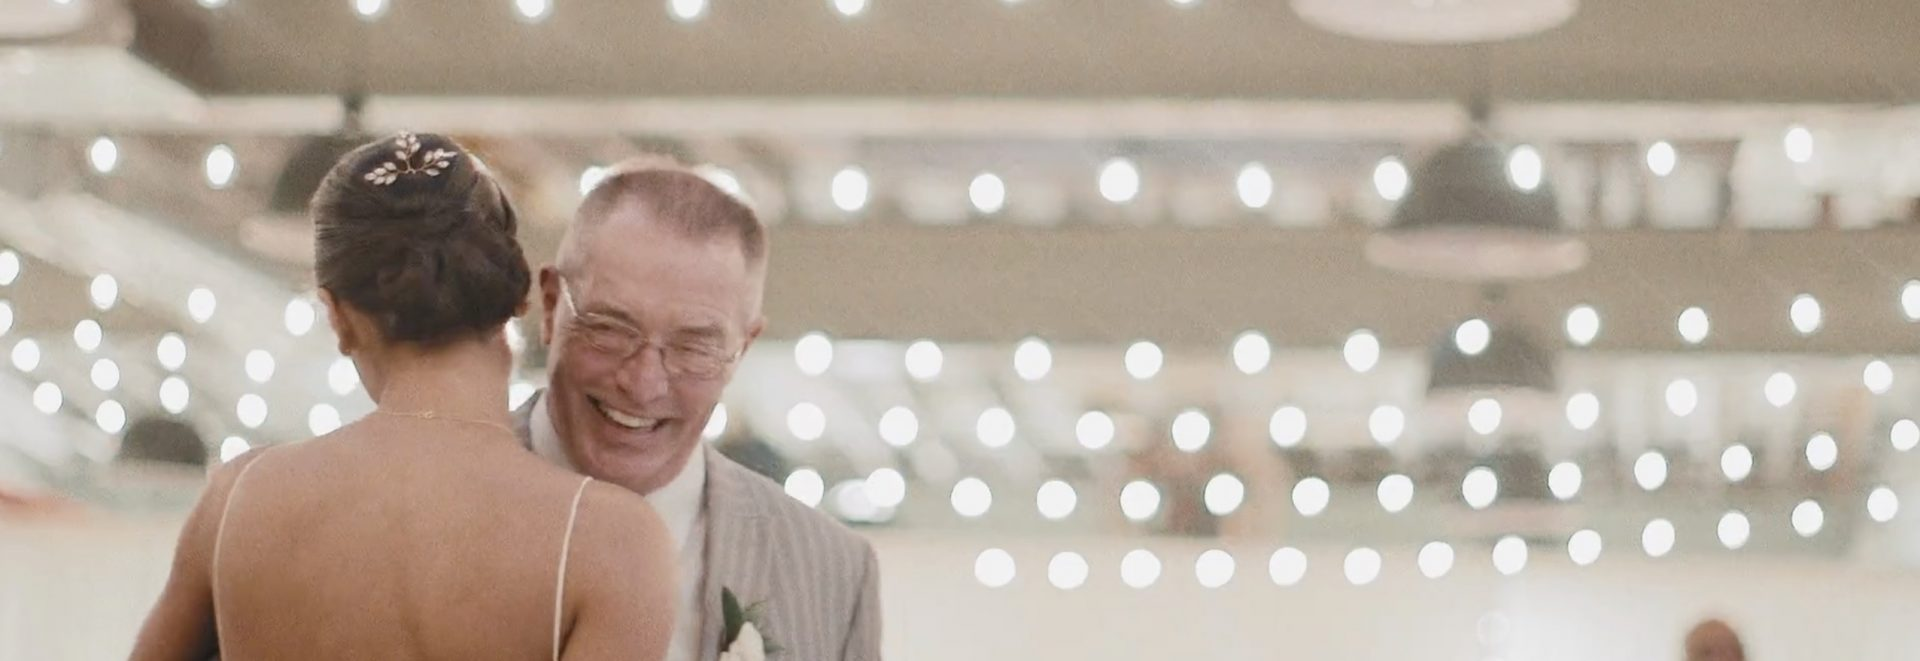 11 Seriously Perfect Father-Daughter Wedding Dance Song Ideas